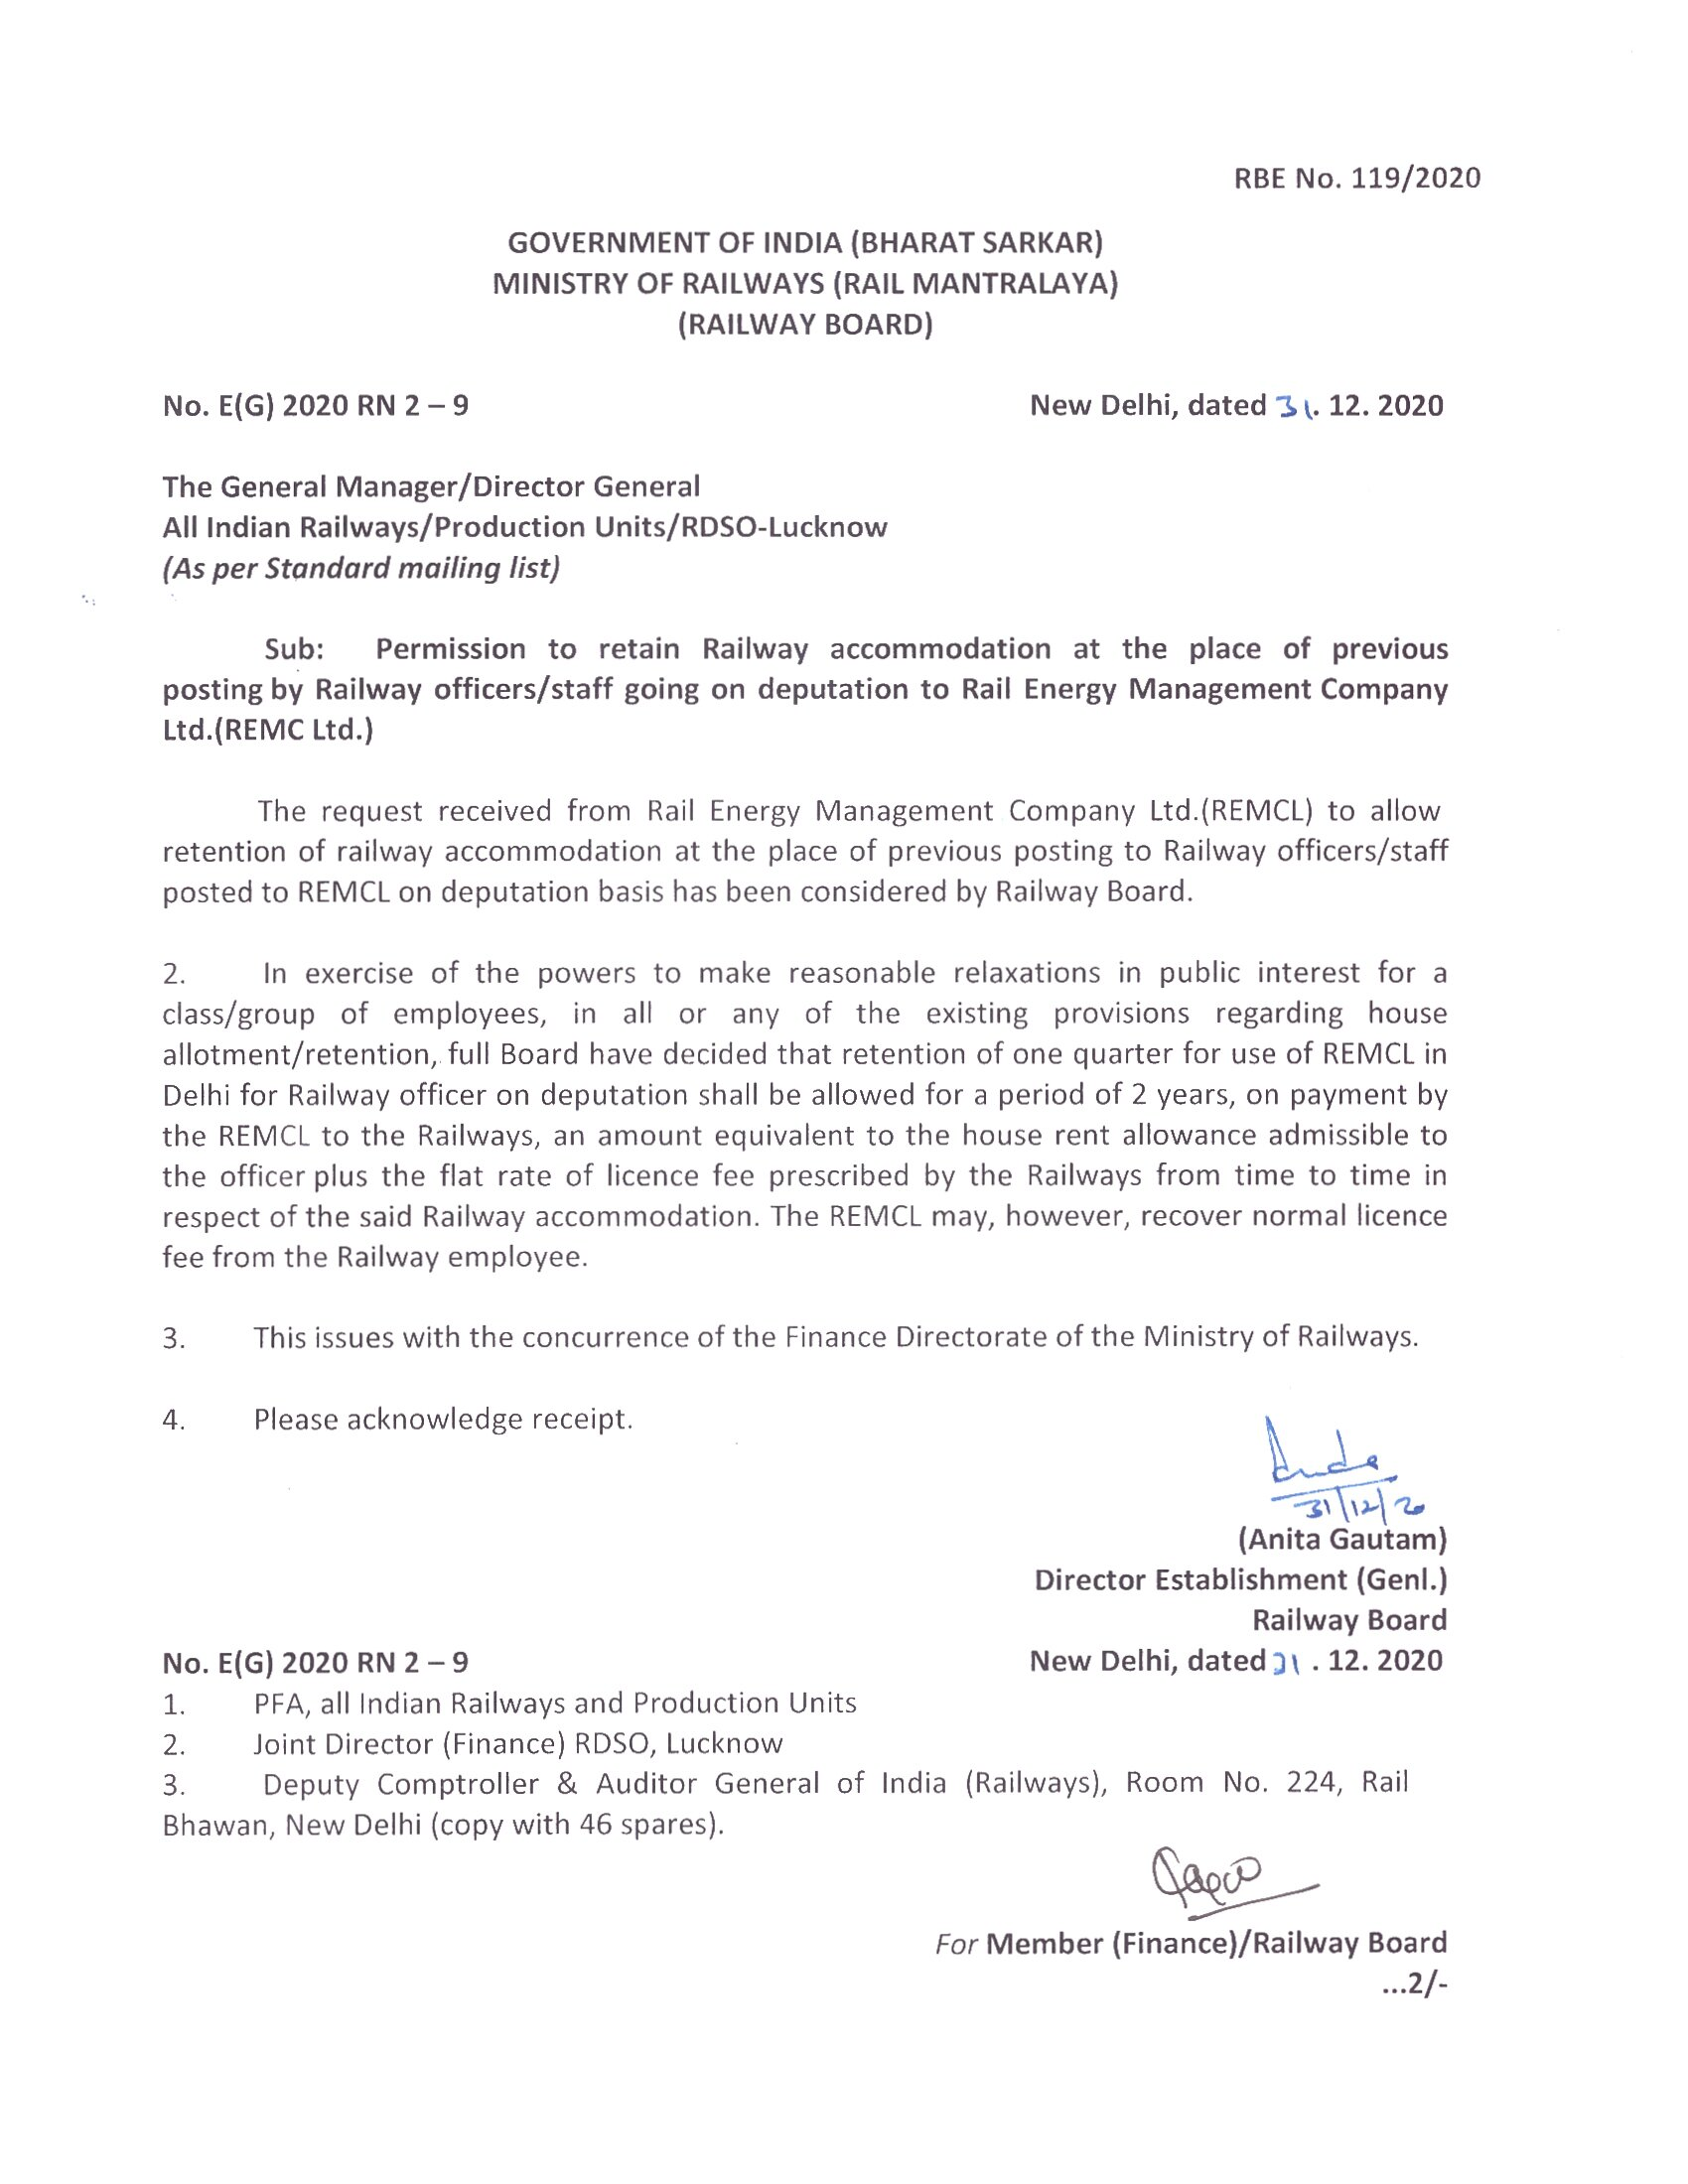 RBE No. 119/2020: Permission to retain Railway accommodation at the place of previous posting by Railway officers/staff going on deputation to Rail Energy Management Company Ltd.(REMC Ltd.)